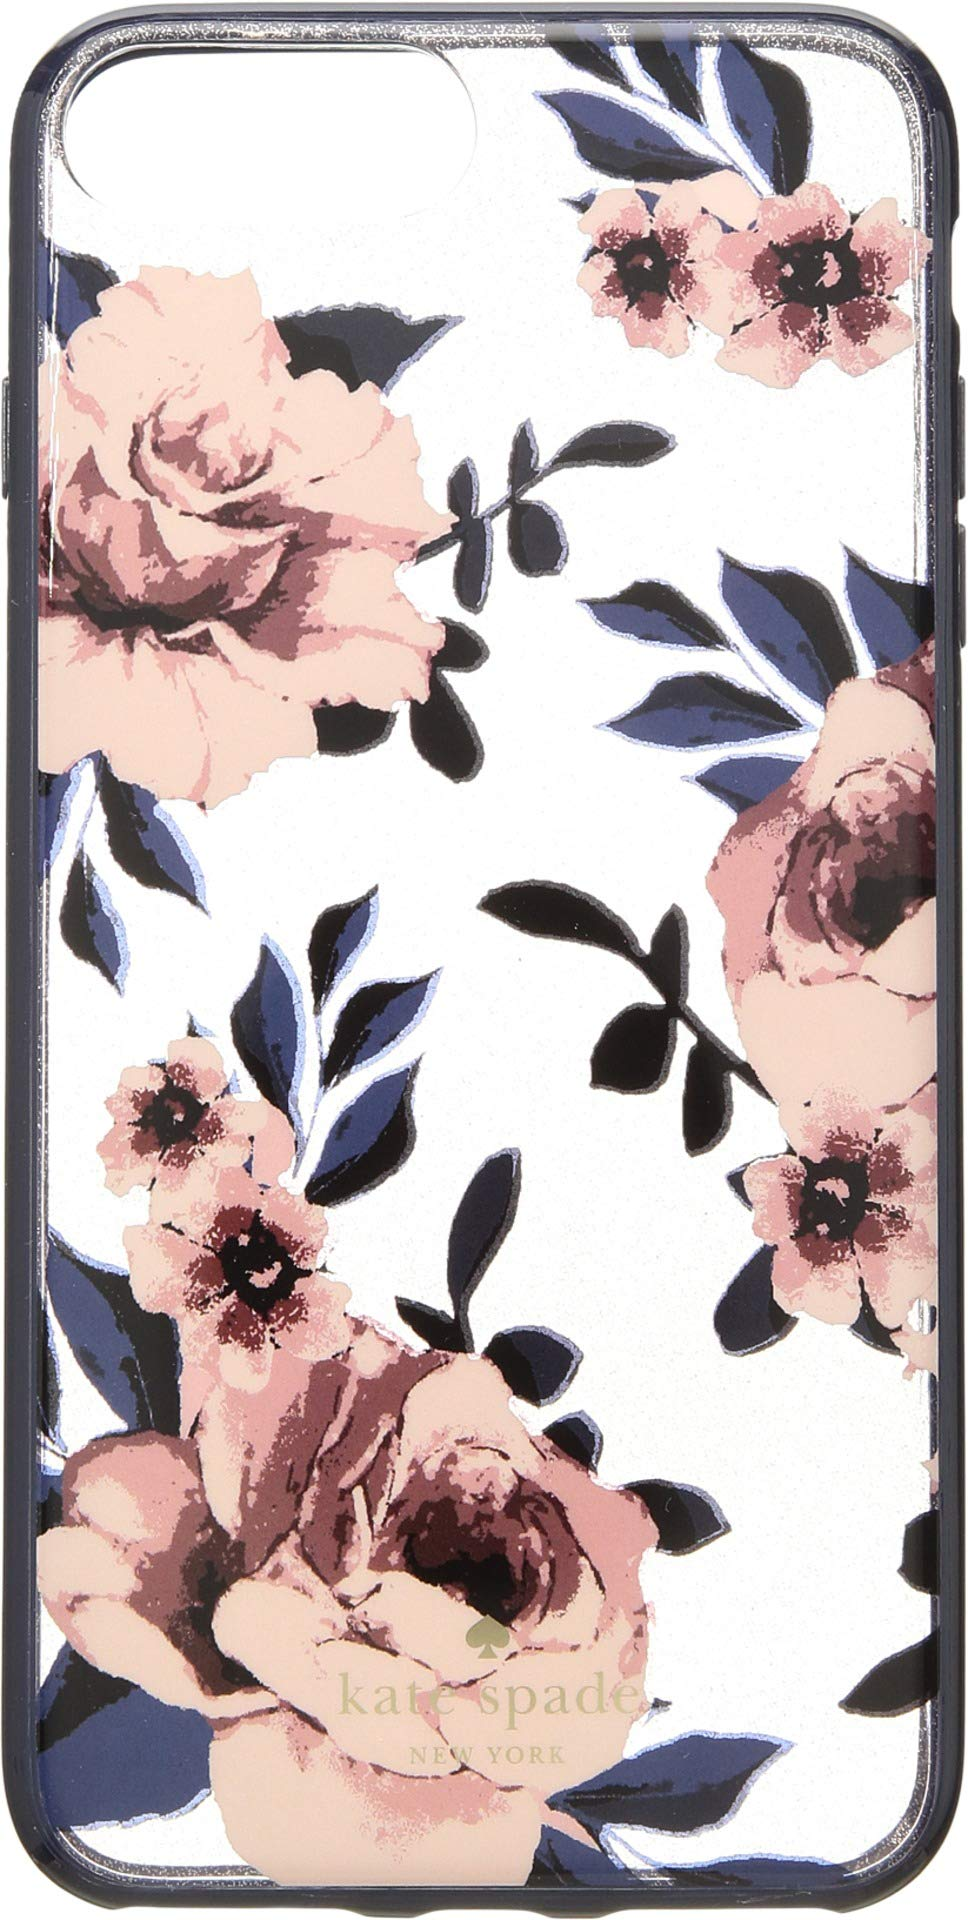 Kate Spade New York Women's Glitter Prairie Rose Phone Case for iPhone 8 Plus Multi One Size